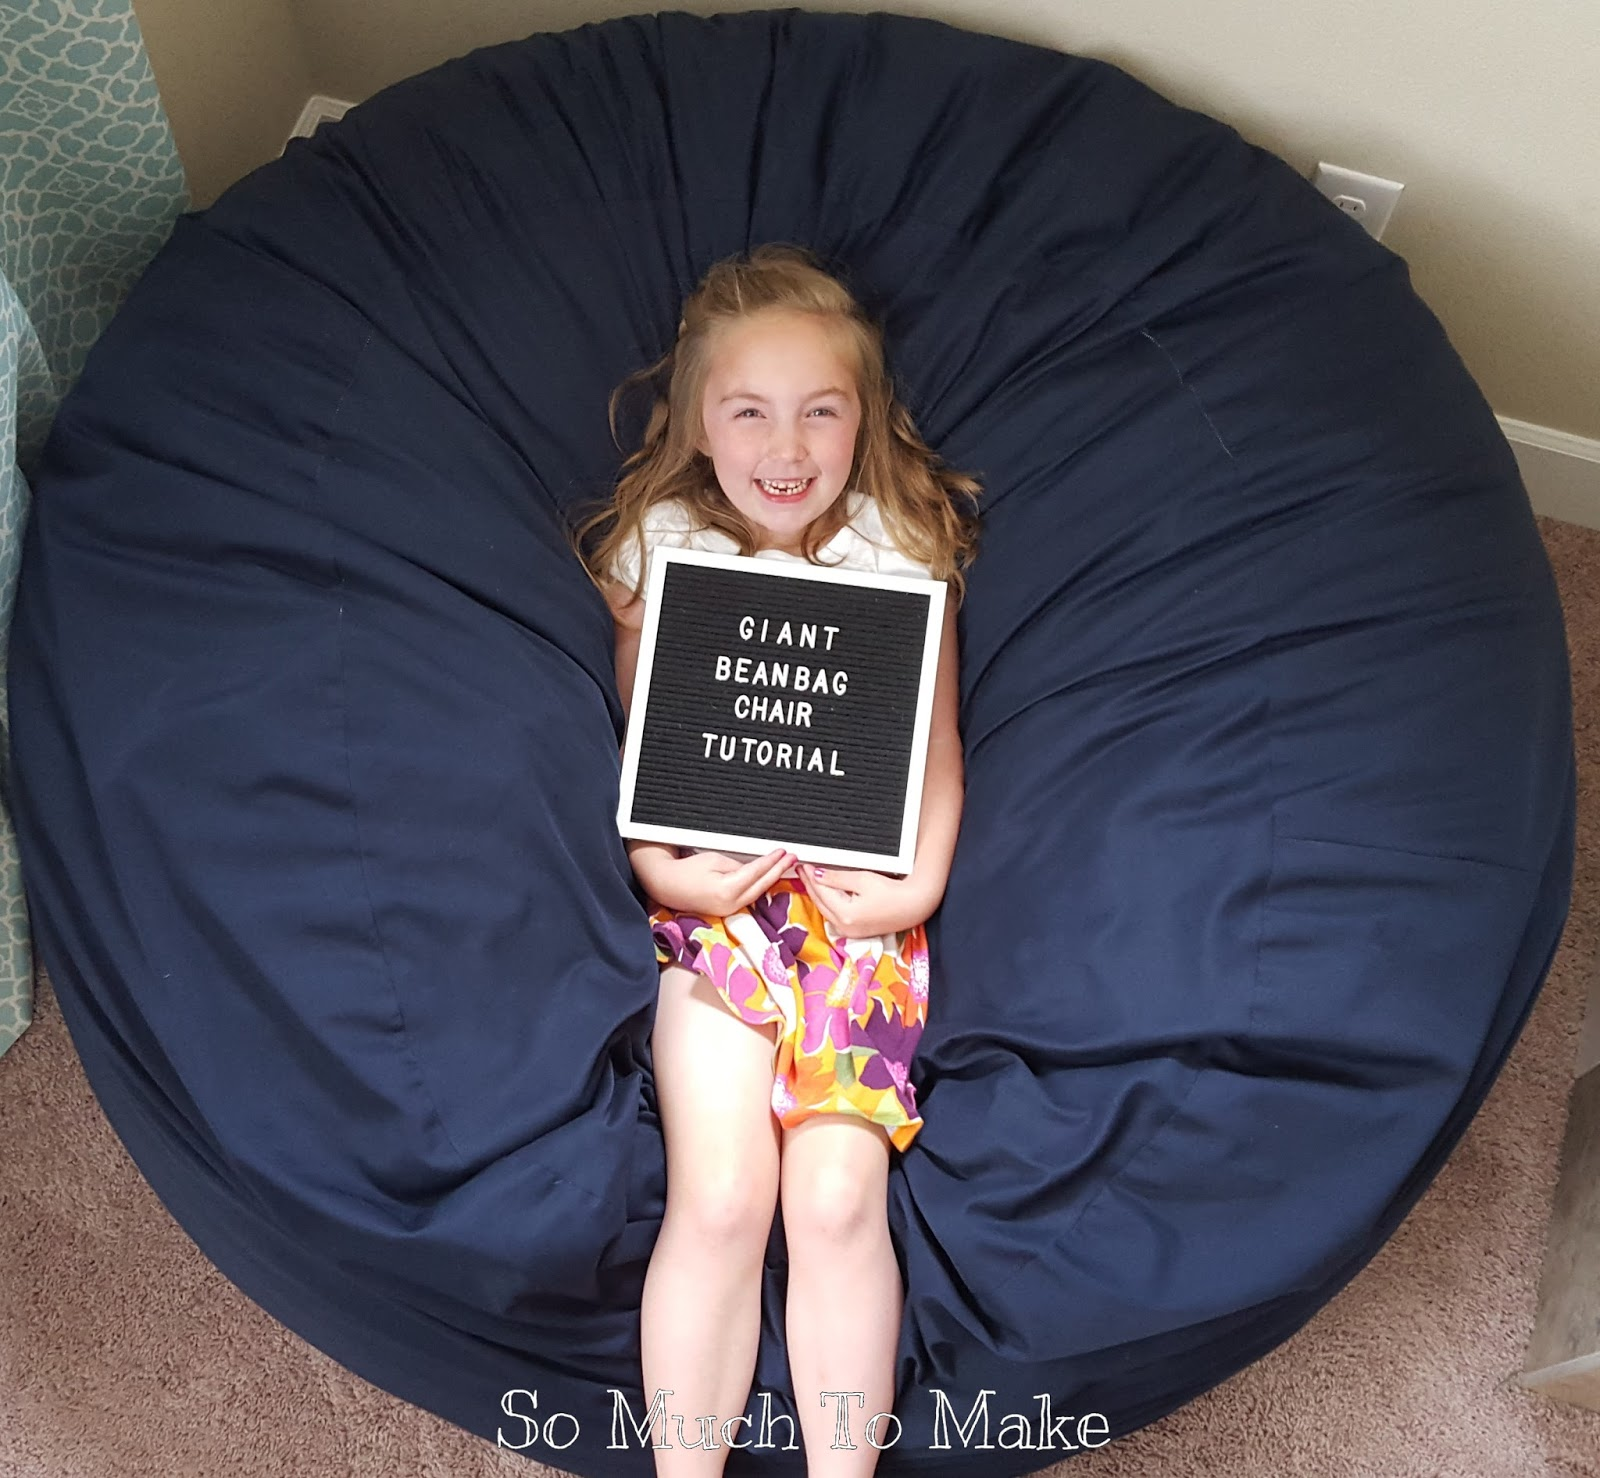 Making Your Own Giant Bean Bag Is The Way To Go These Comfy Foam Filled Chairs Cost Upwards Of 300 Buy New And By One Yourself